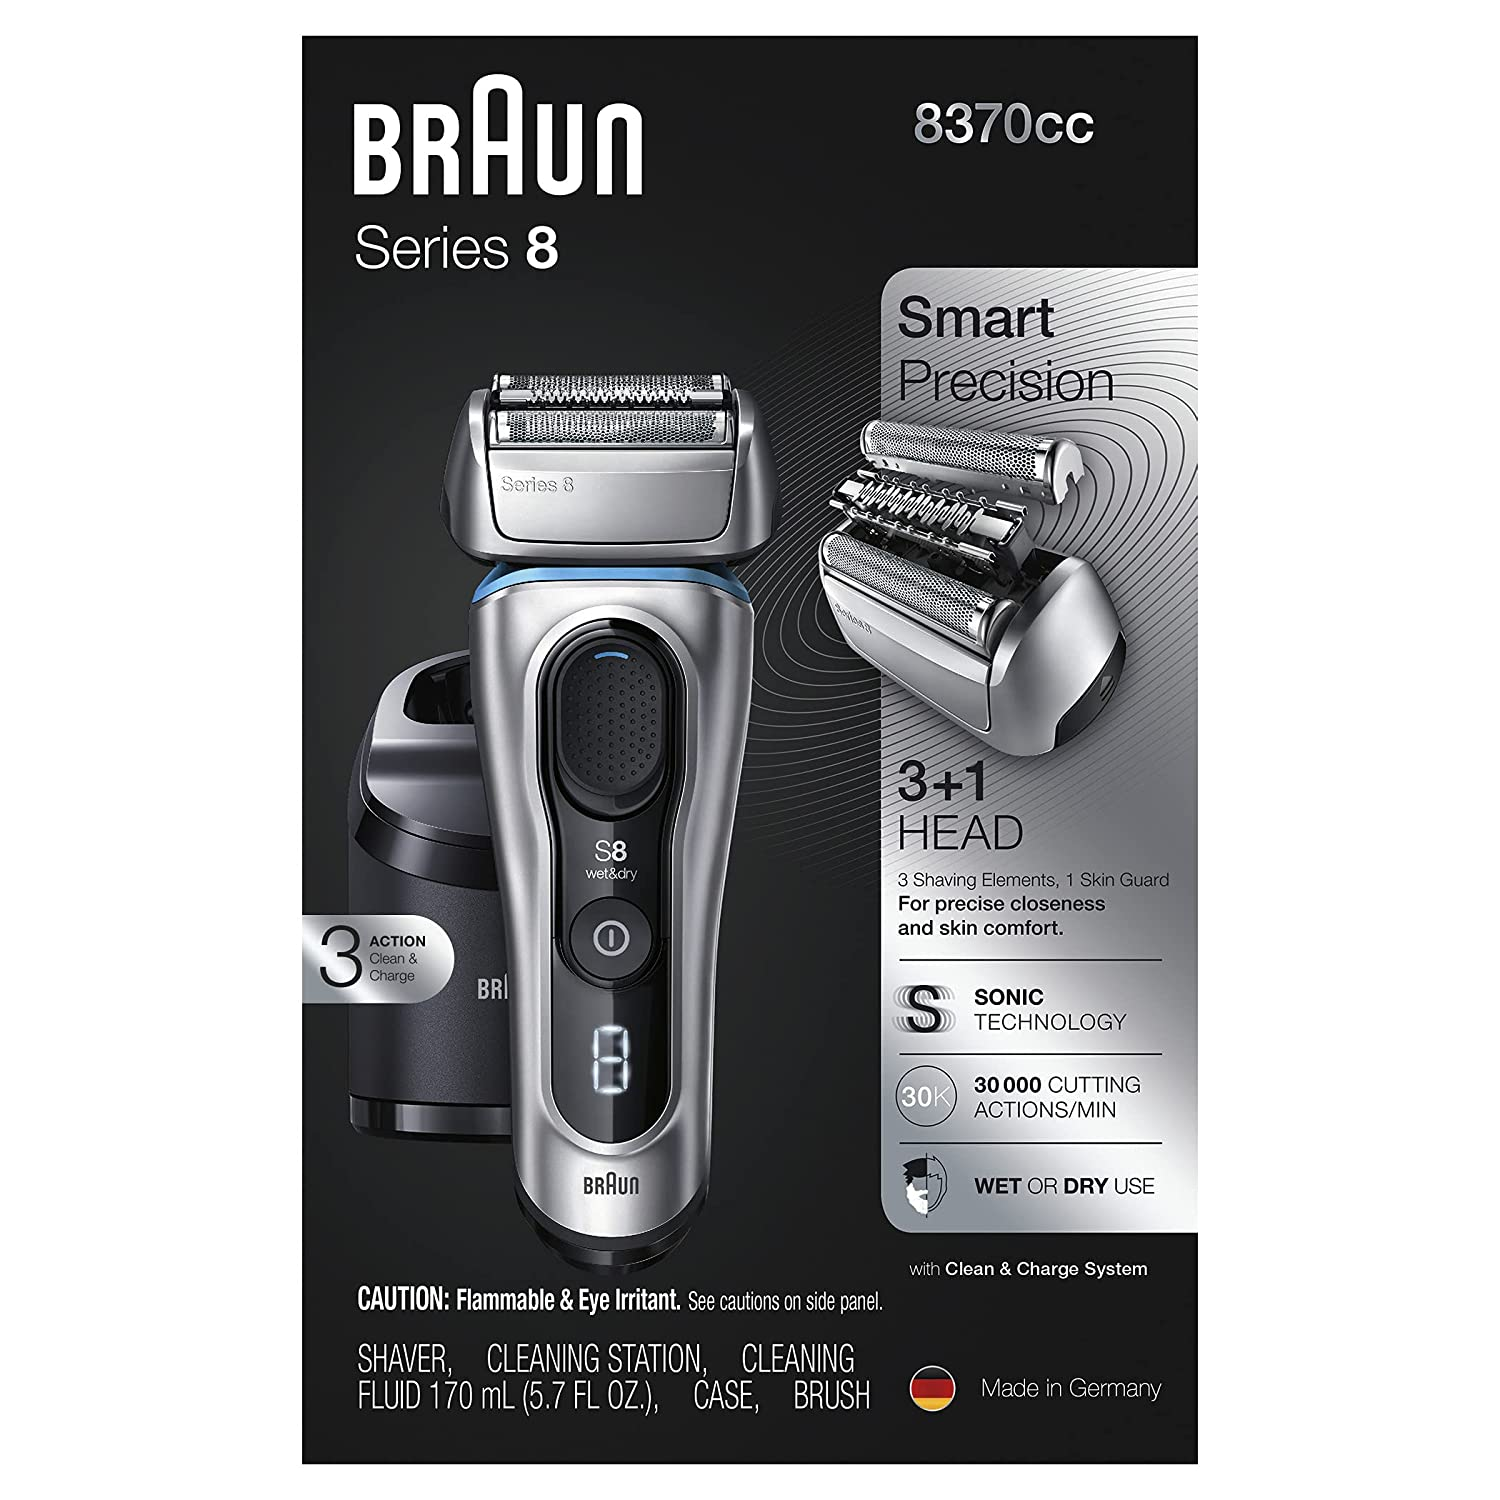 Braun Series 8 8370cc Next Quantity limited Recharge Electric Shaver Fashionable Generation